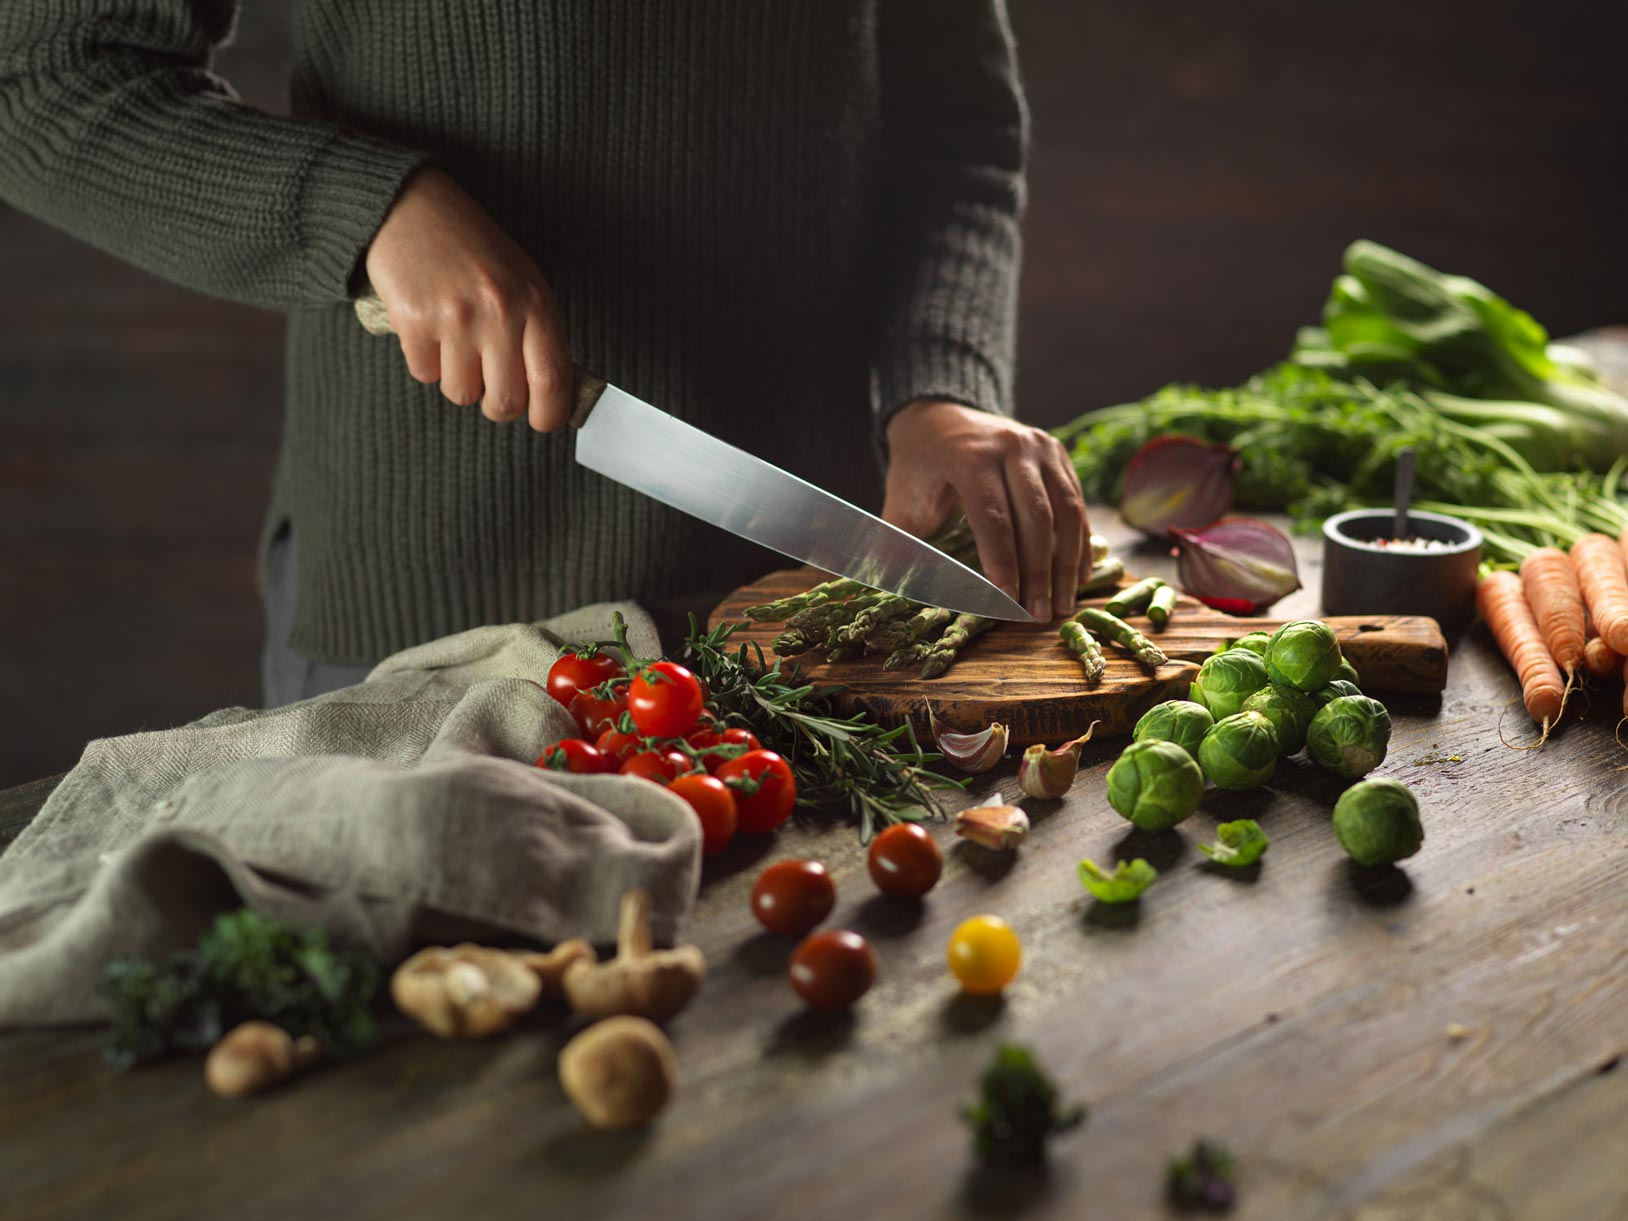 Food photography with model cutting fresh vegetables